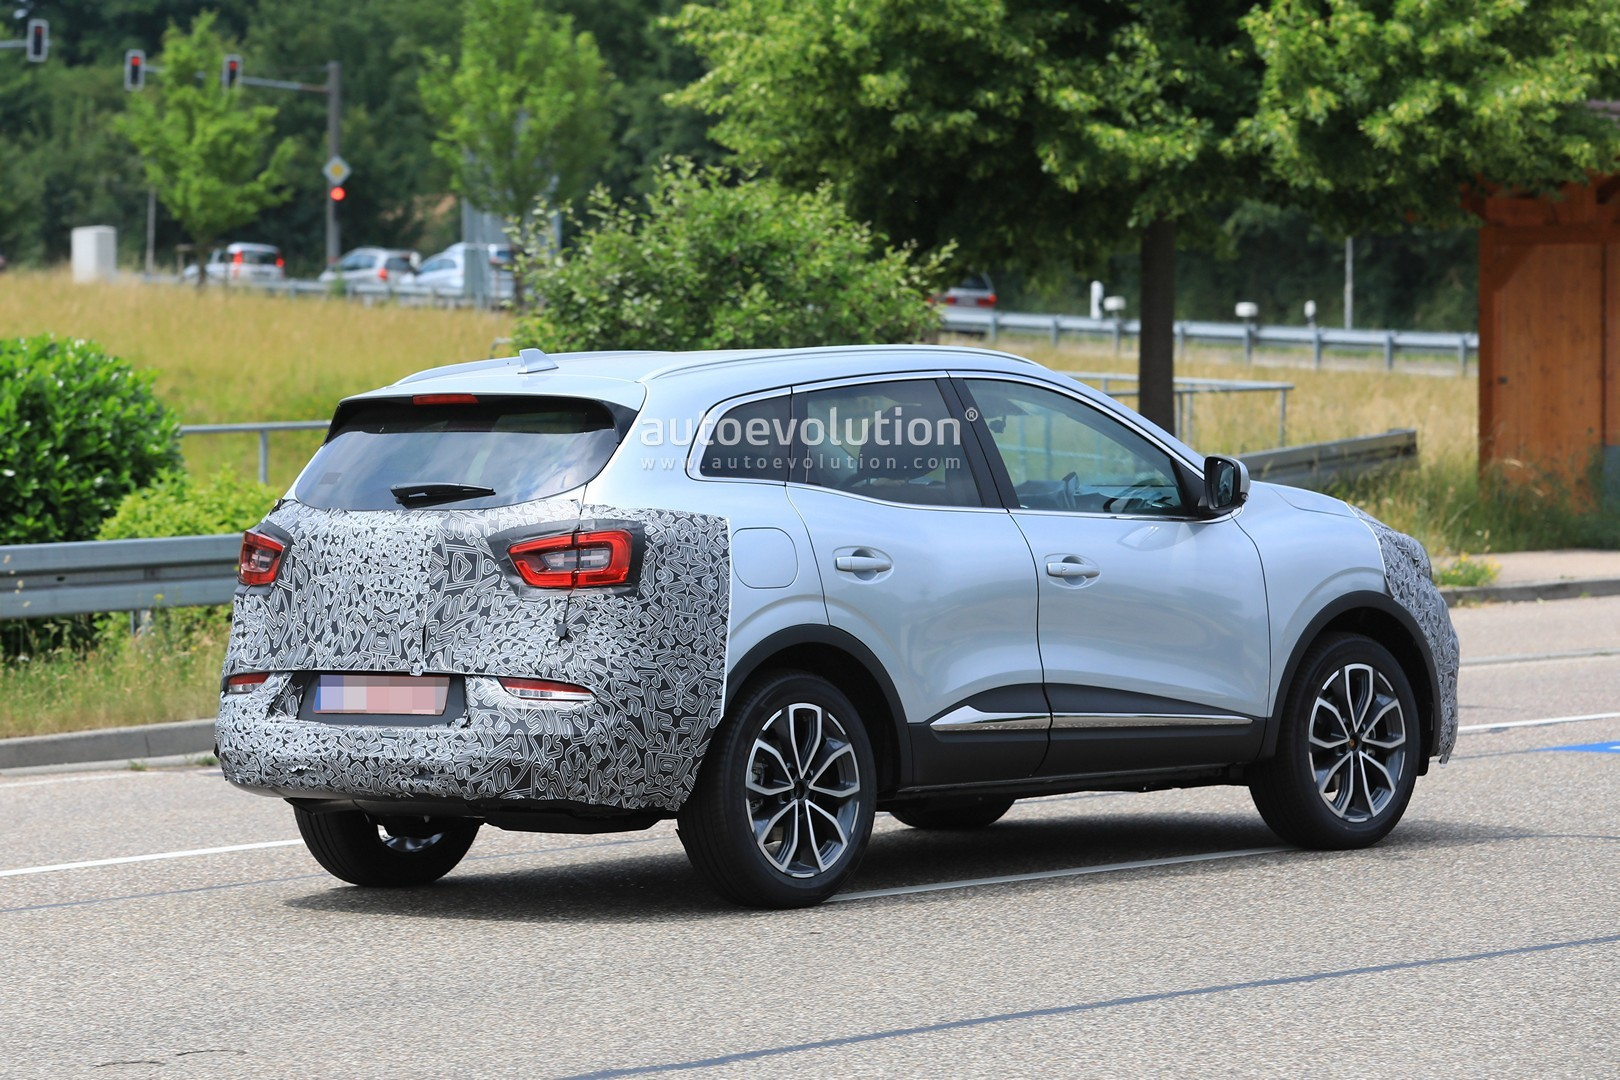 2019 Renault Kadjar Facelift Spied With New Front End, Will Debut in September - autoevolution